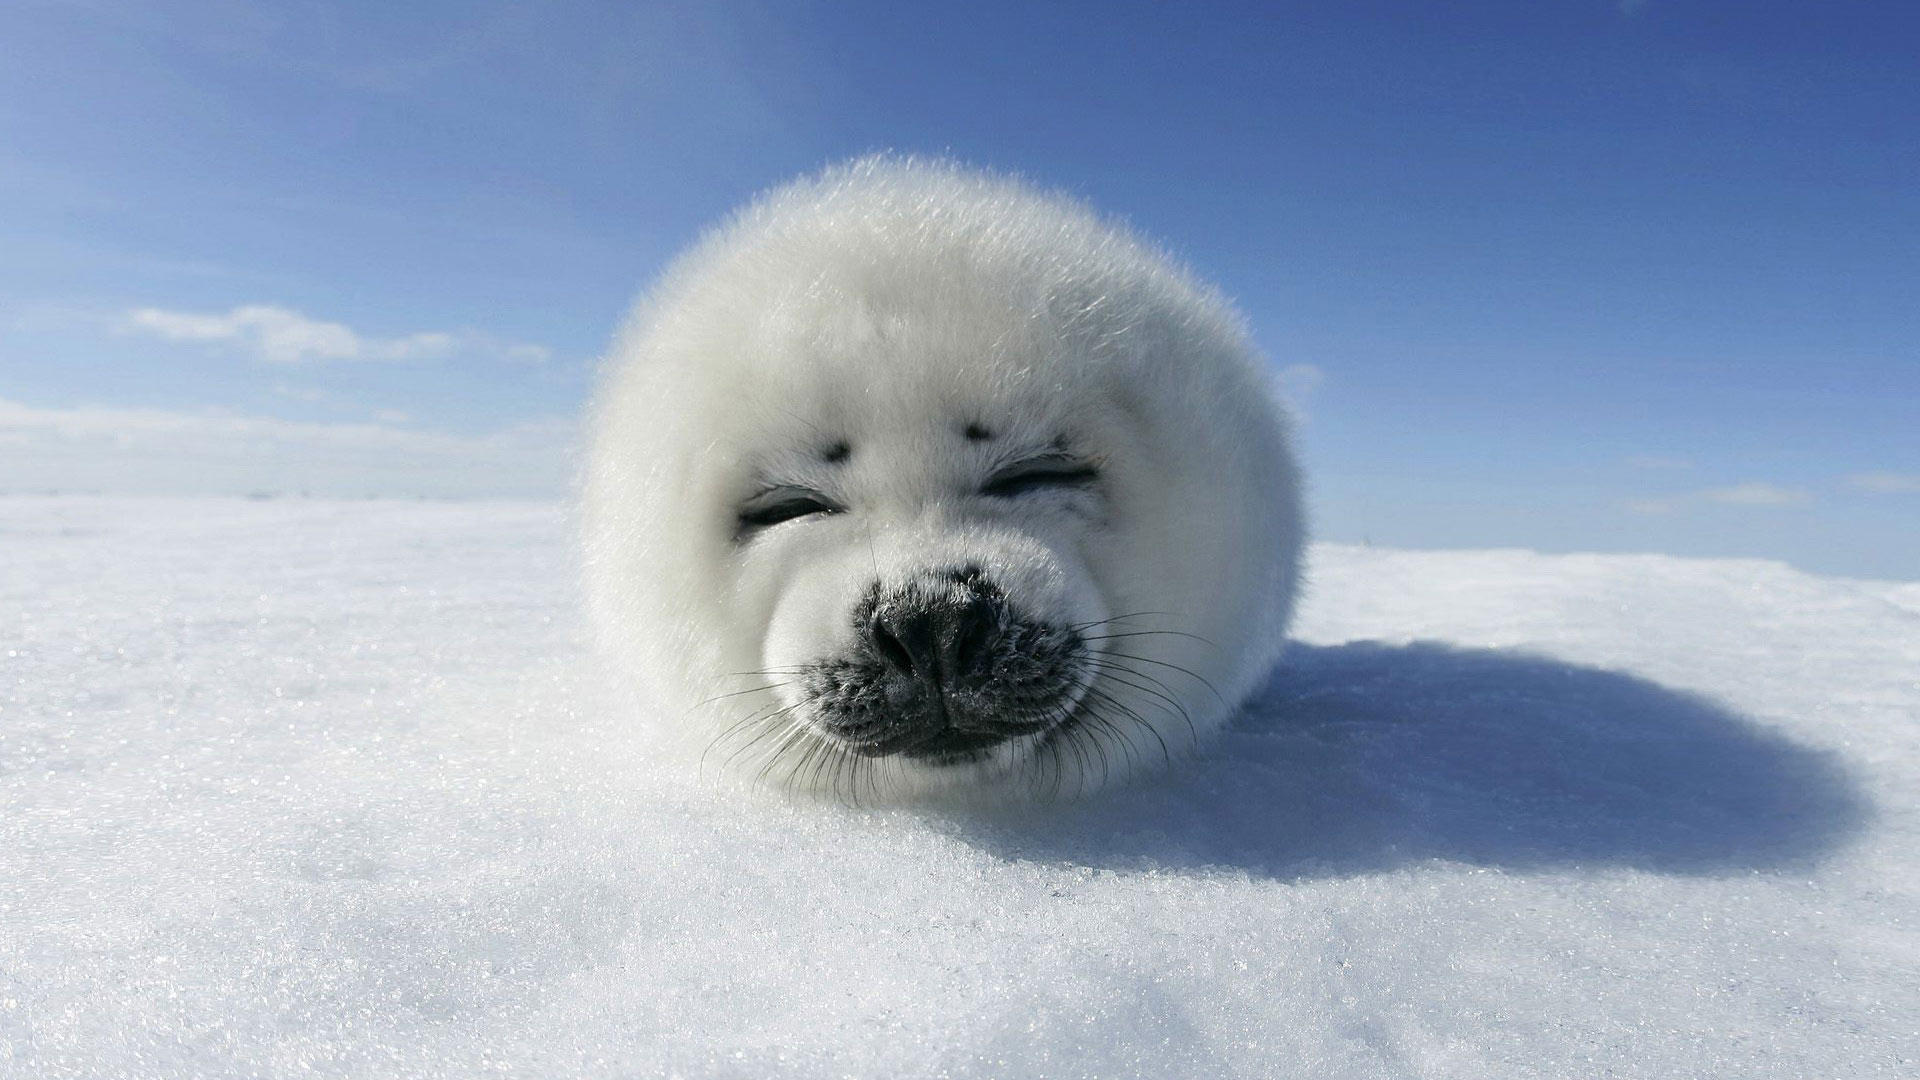 Cute Animal Pictures And Wallpapers The Wow Style